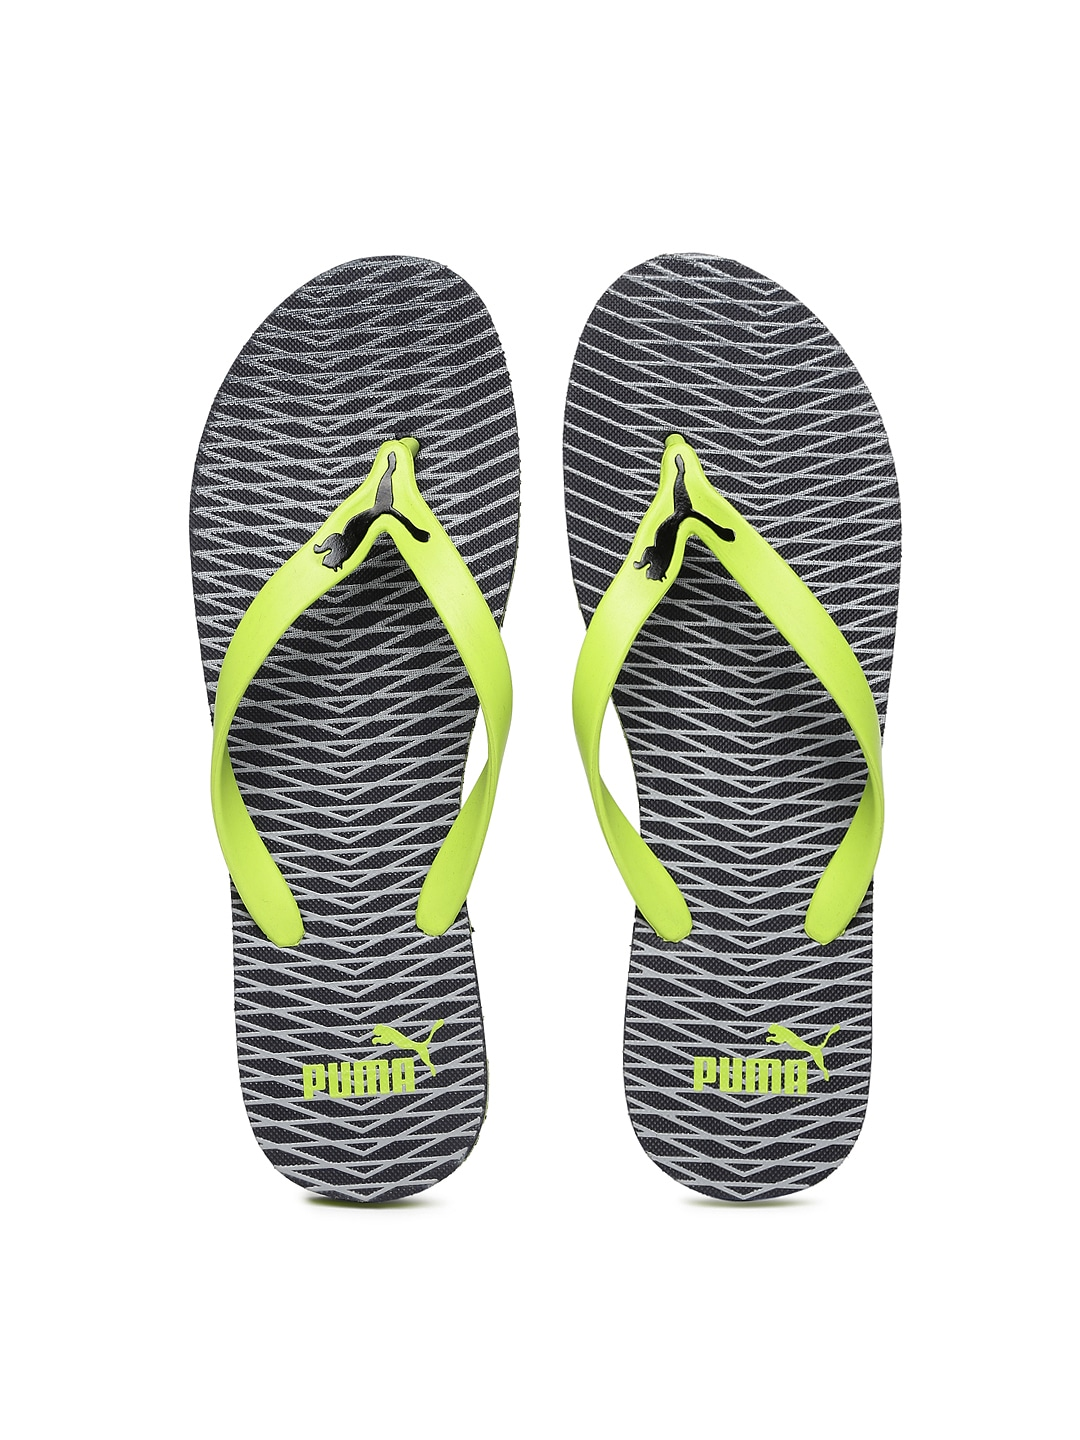 03a1cfcf3a0d Puma 36325701 Men Lime Green And Grey Luca Printed Flip Flops- Price in  India